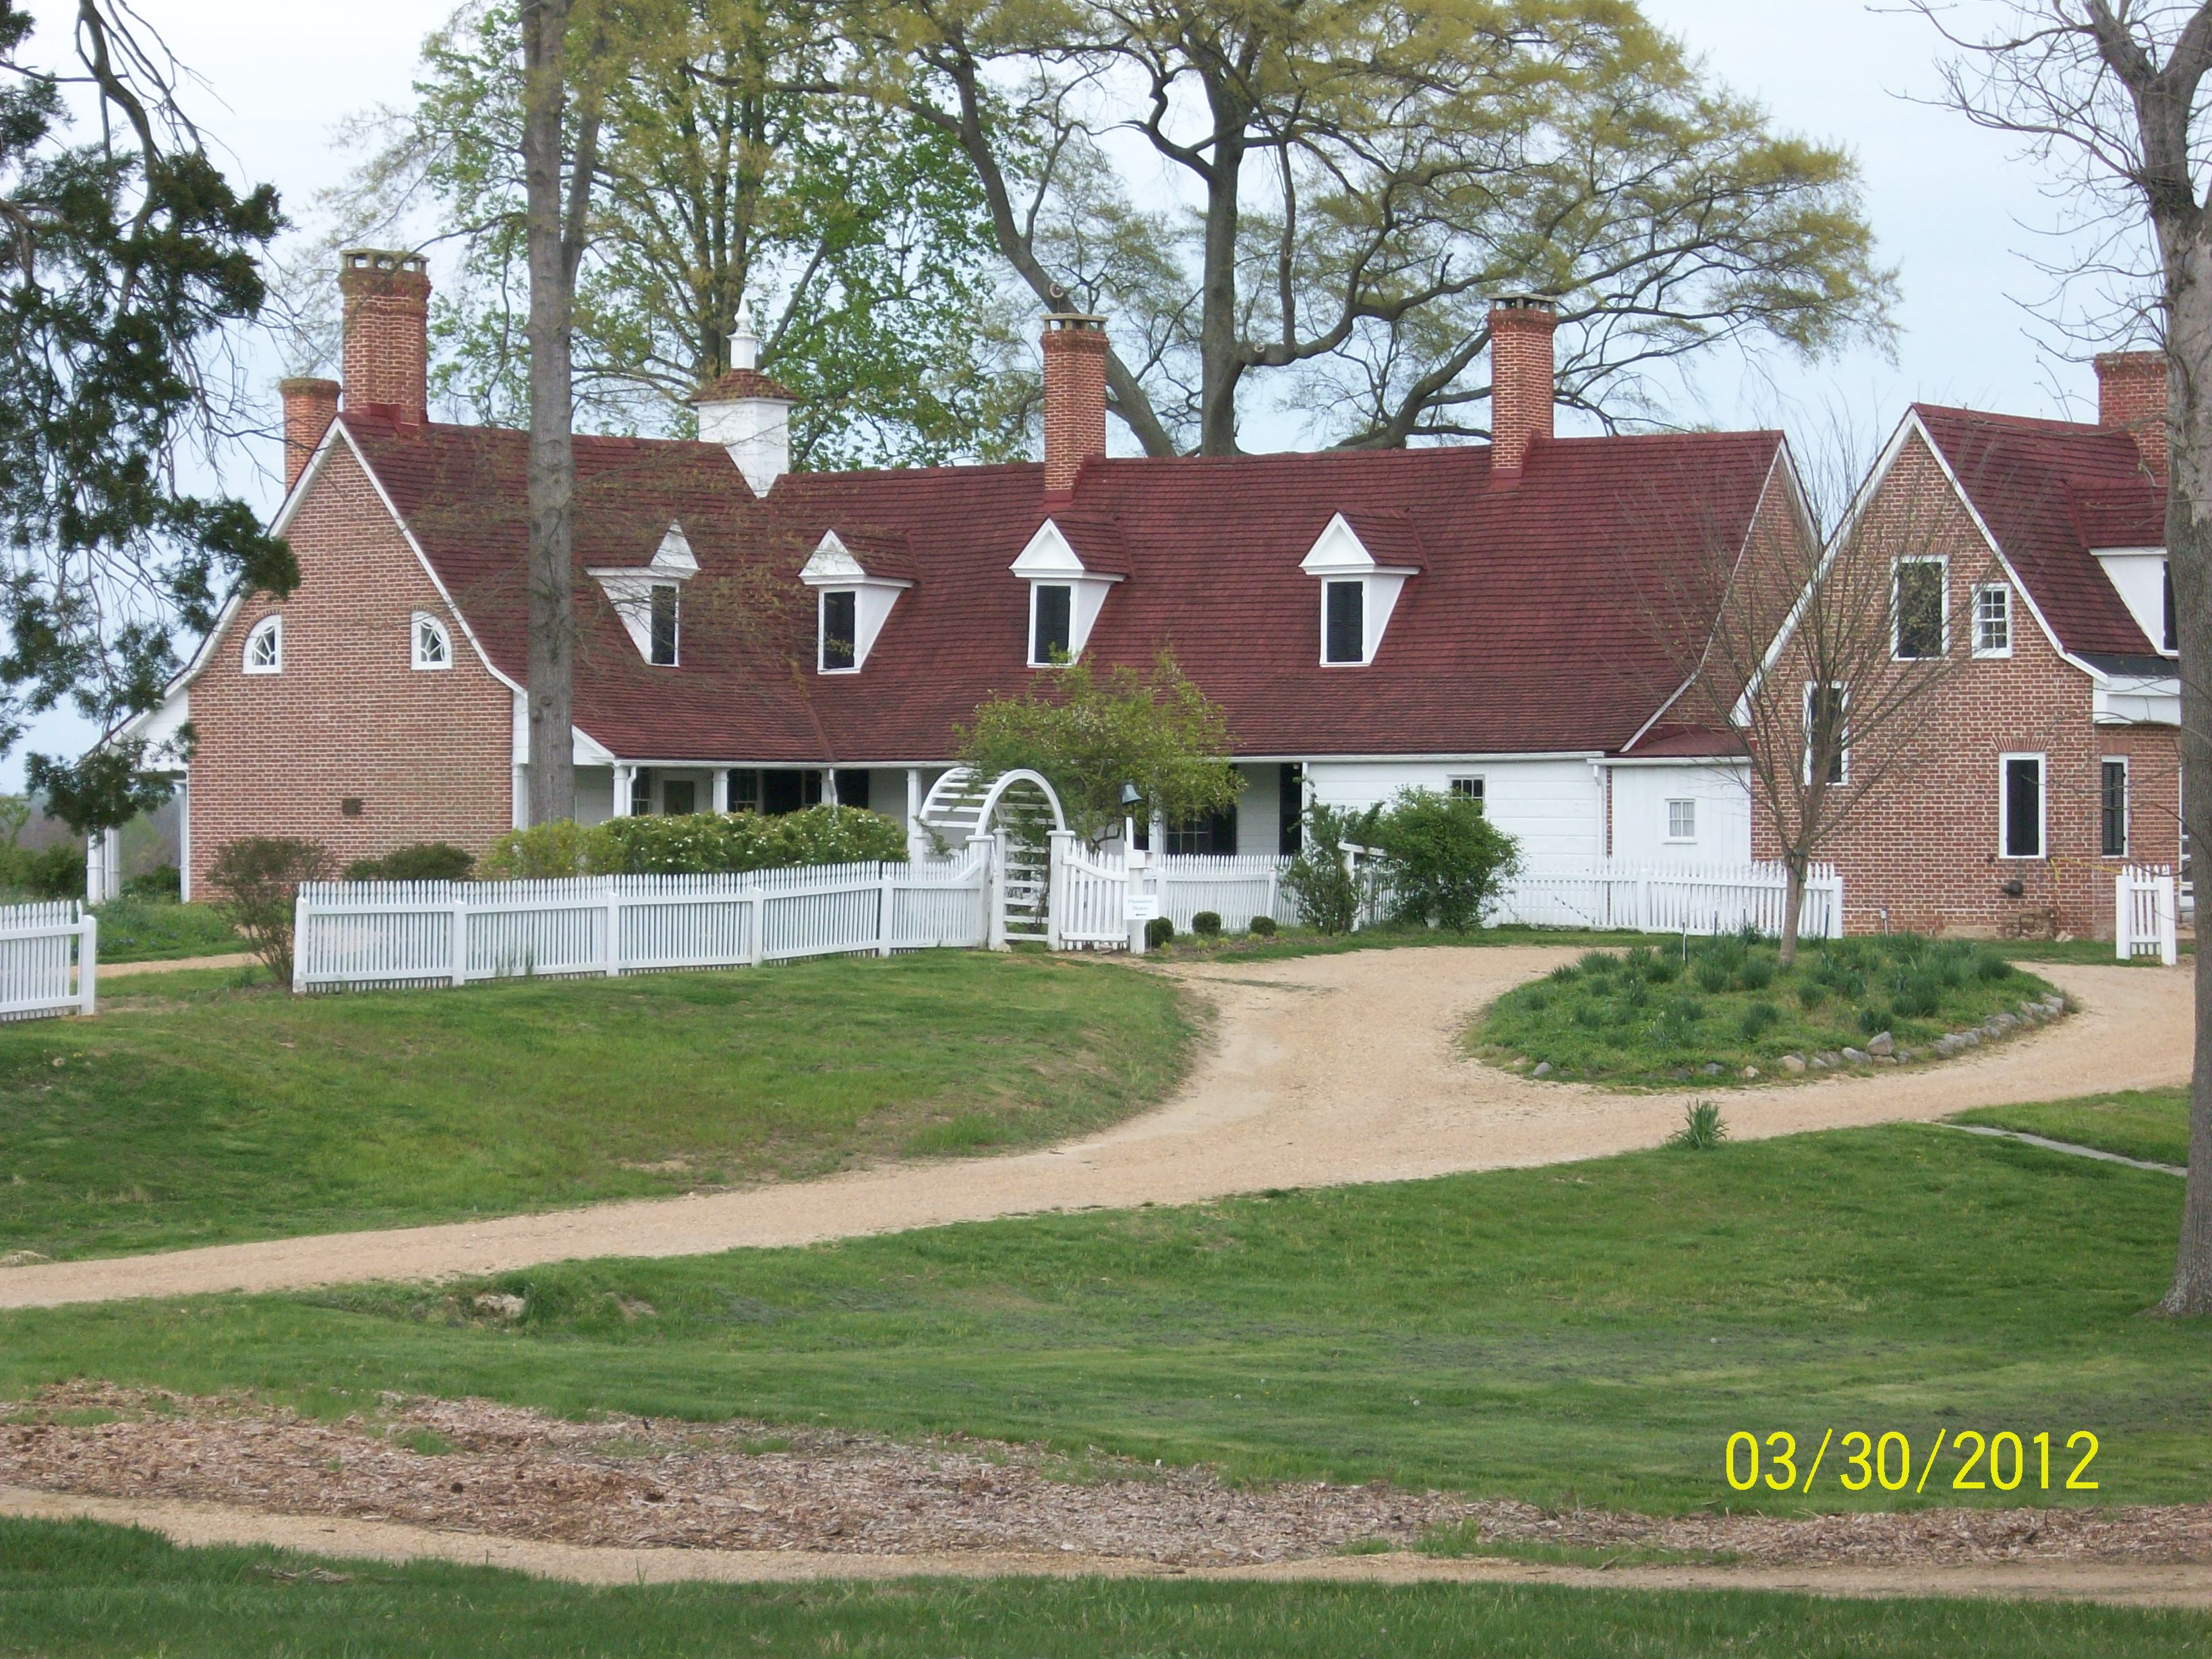 Sotterley's manor house dates back to the early 18th century. It has been altered by its owners over the centuries. The exteriors of the house visitors see today reflects the romanticized vision of Herbert Satterlee, the owner from 1910-1947. The view from the road side is shown here.